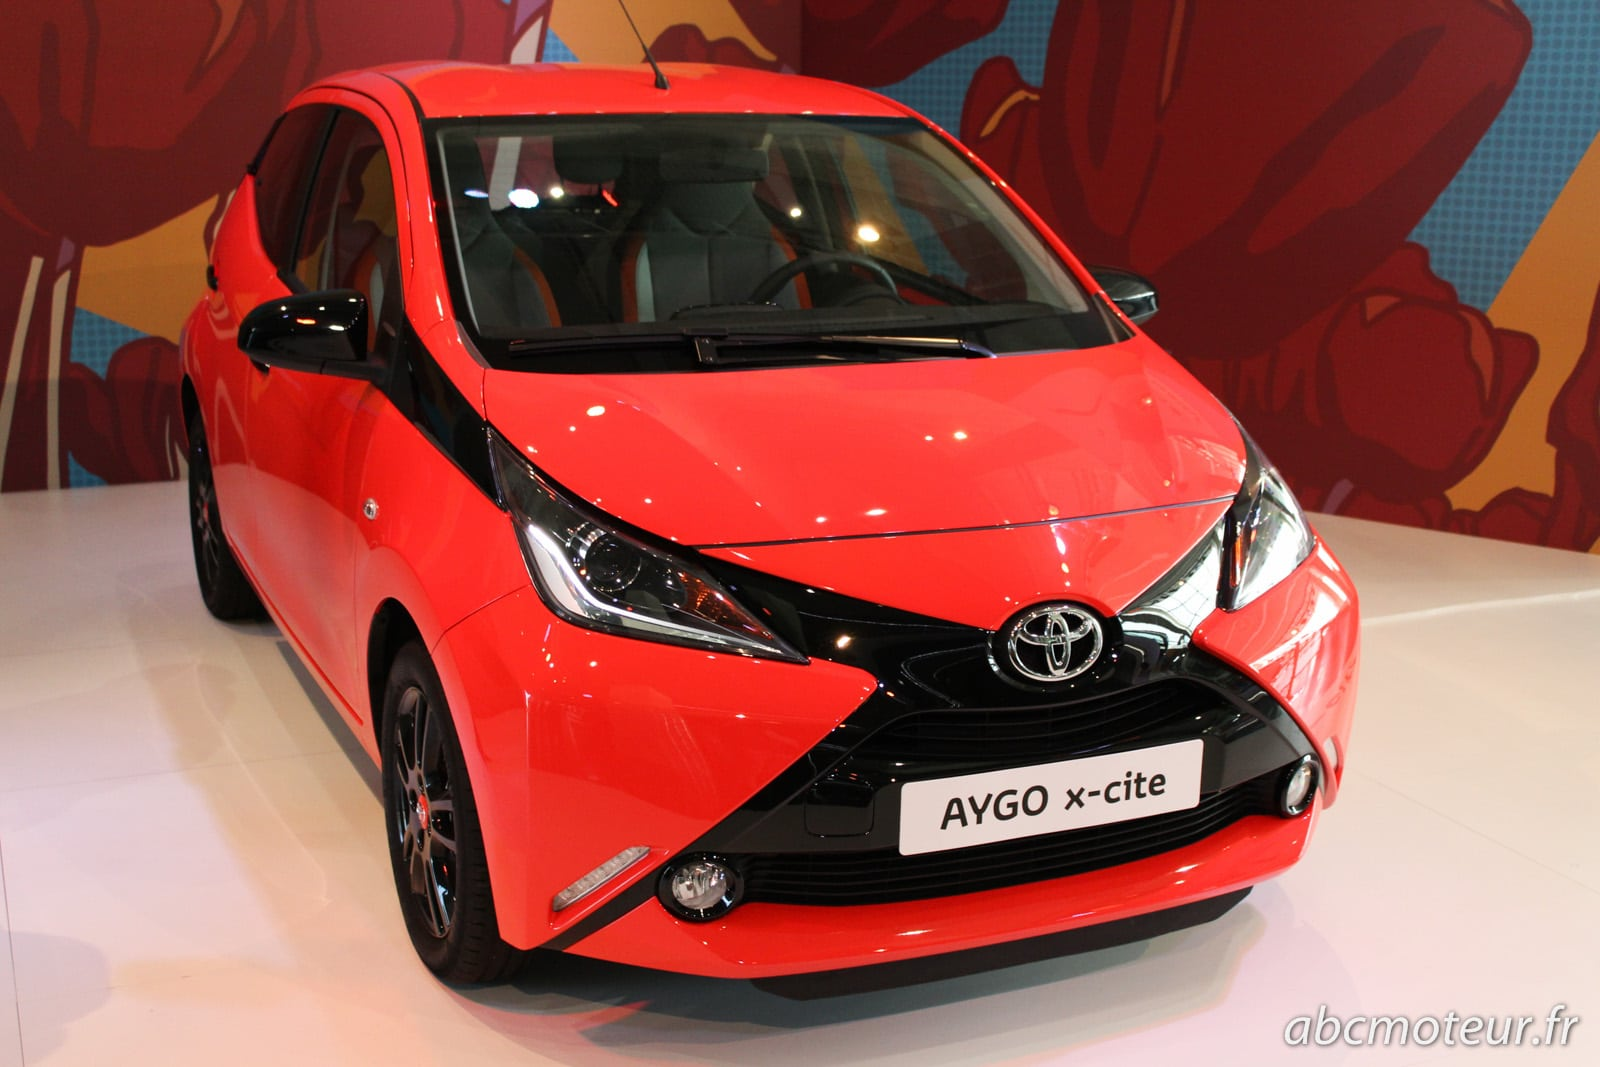 essai nouvelle toyota aygo 2014 1 0 l vvt i 69 ch. Black Bedroom Furniture Sets. Home Design Ideas